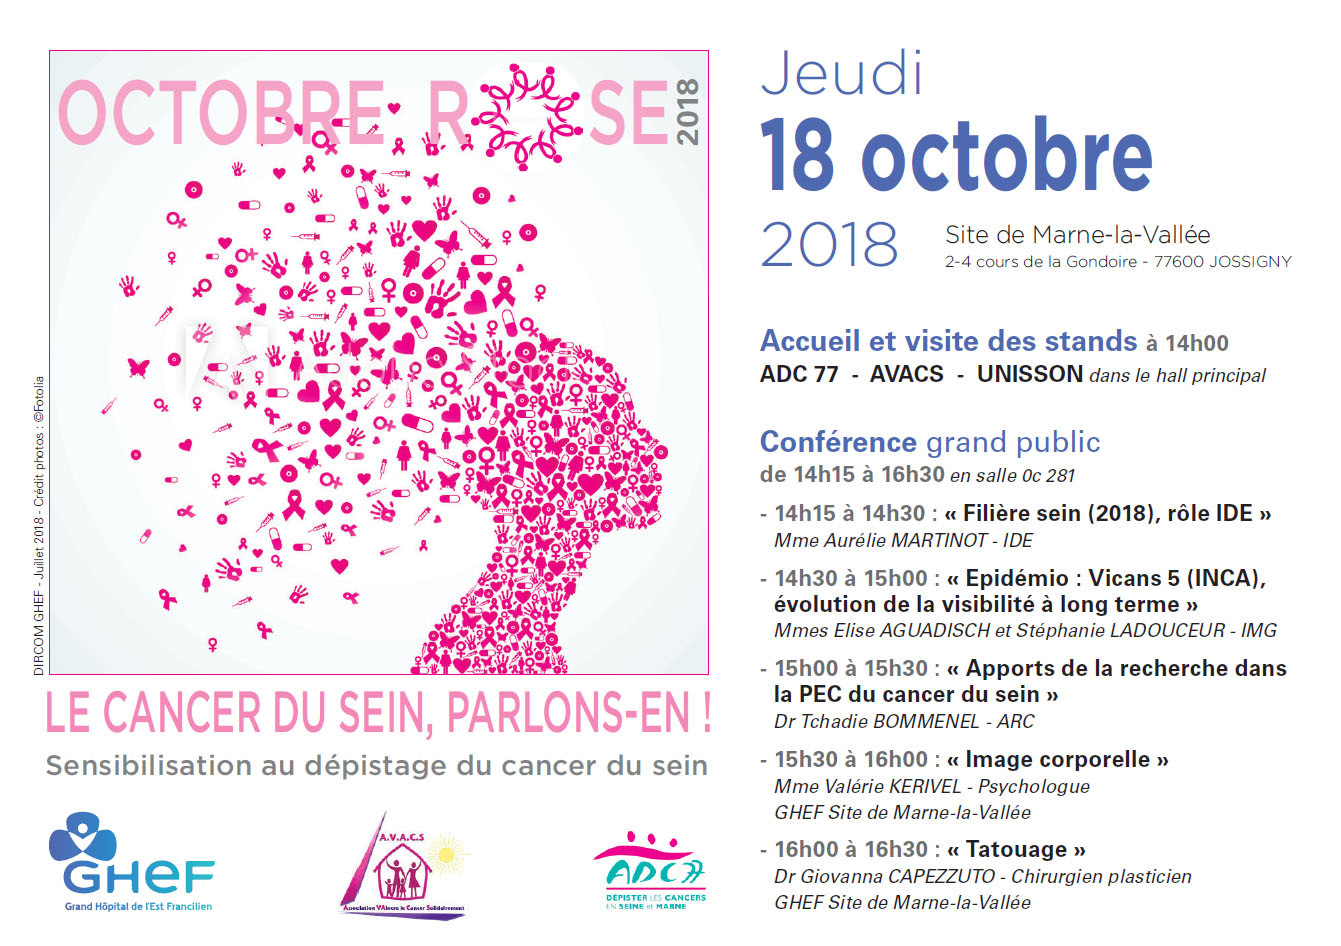 Octobre rose Marne-la-Vallée GHEF Grand Hopital de l'Est Francilien Cancer Sein